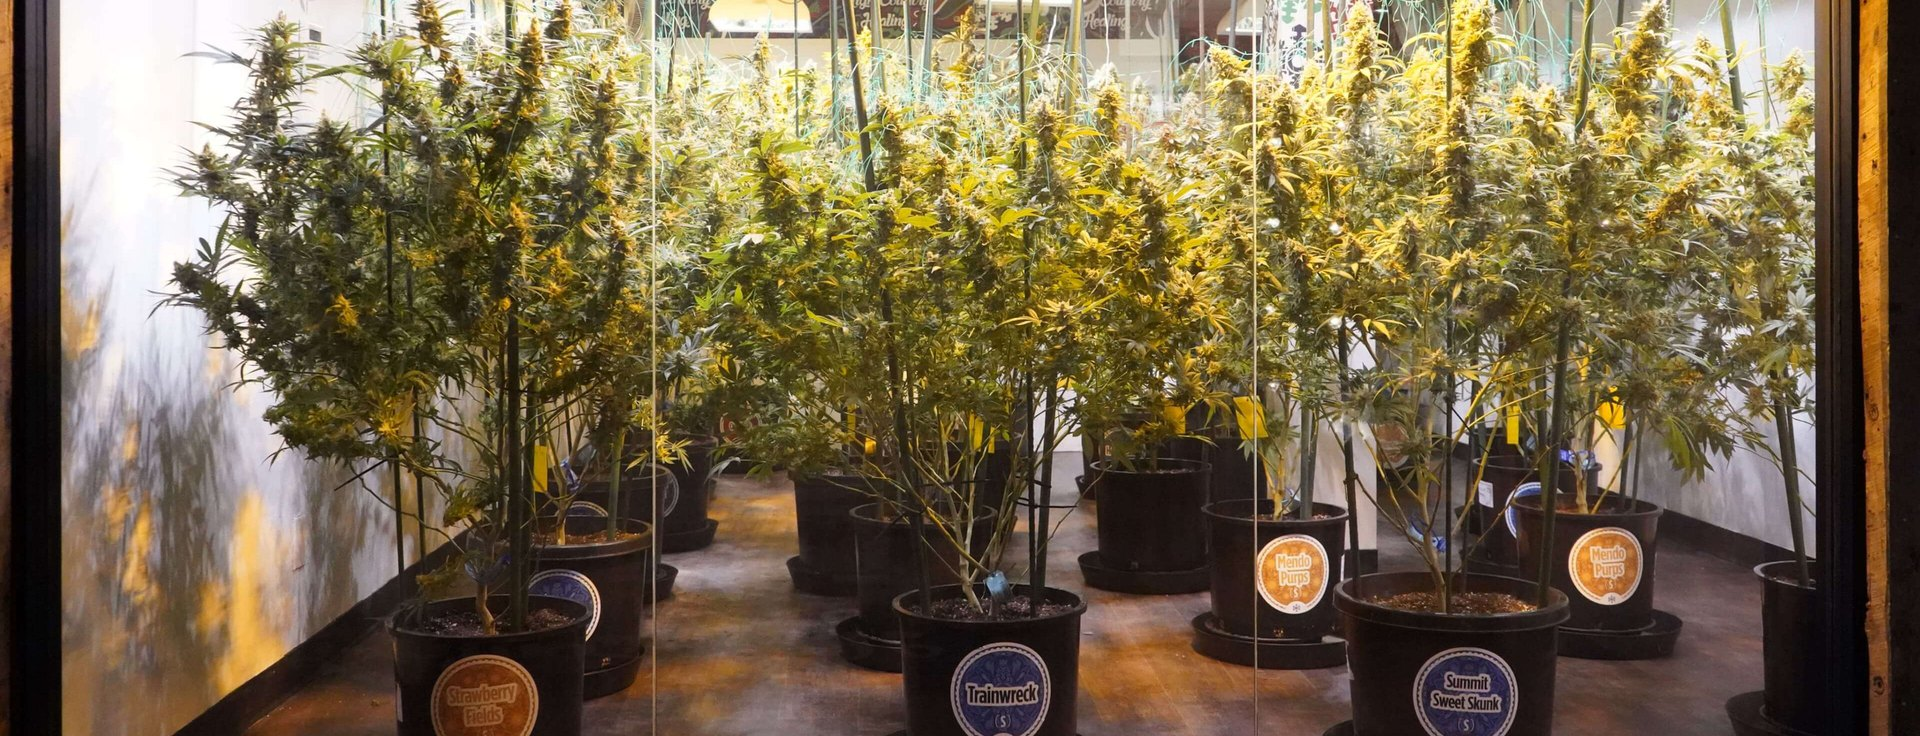 Visit Our Marijuana Dispensary Today and Pick Your Own Bud